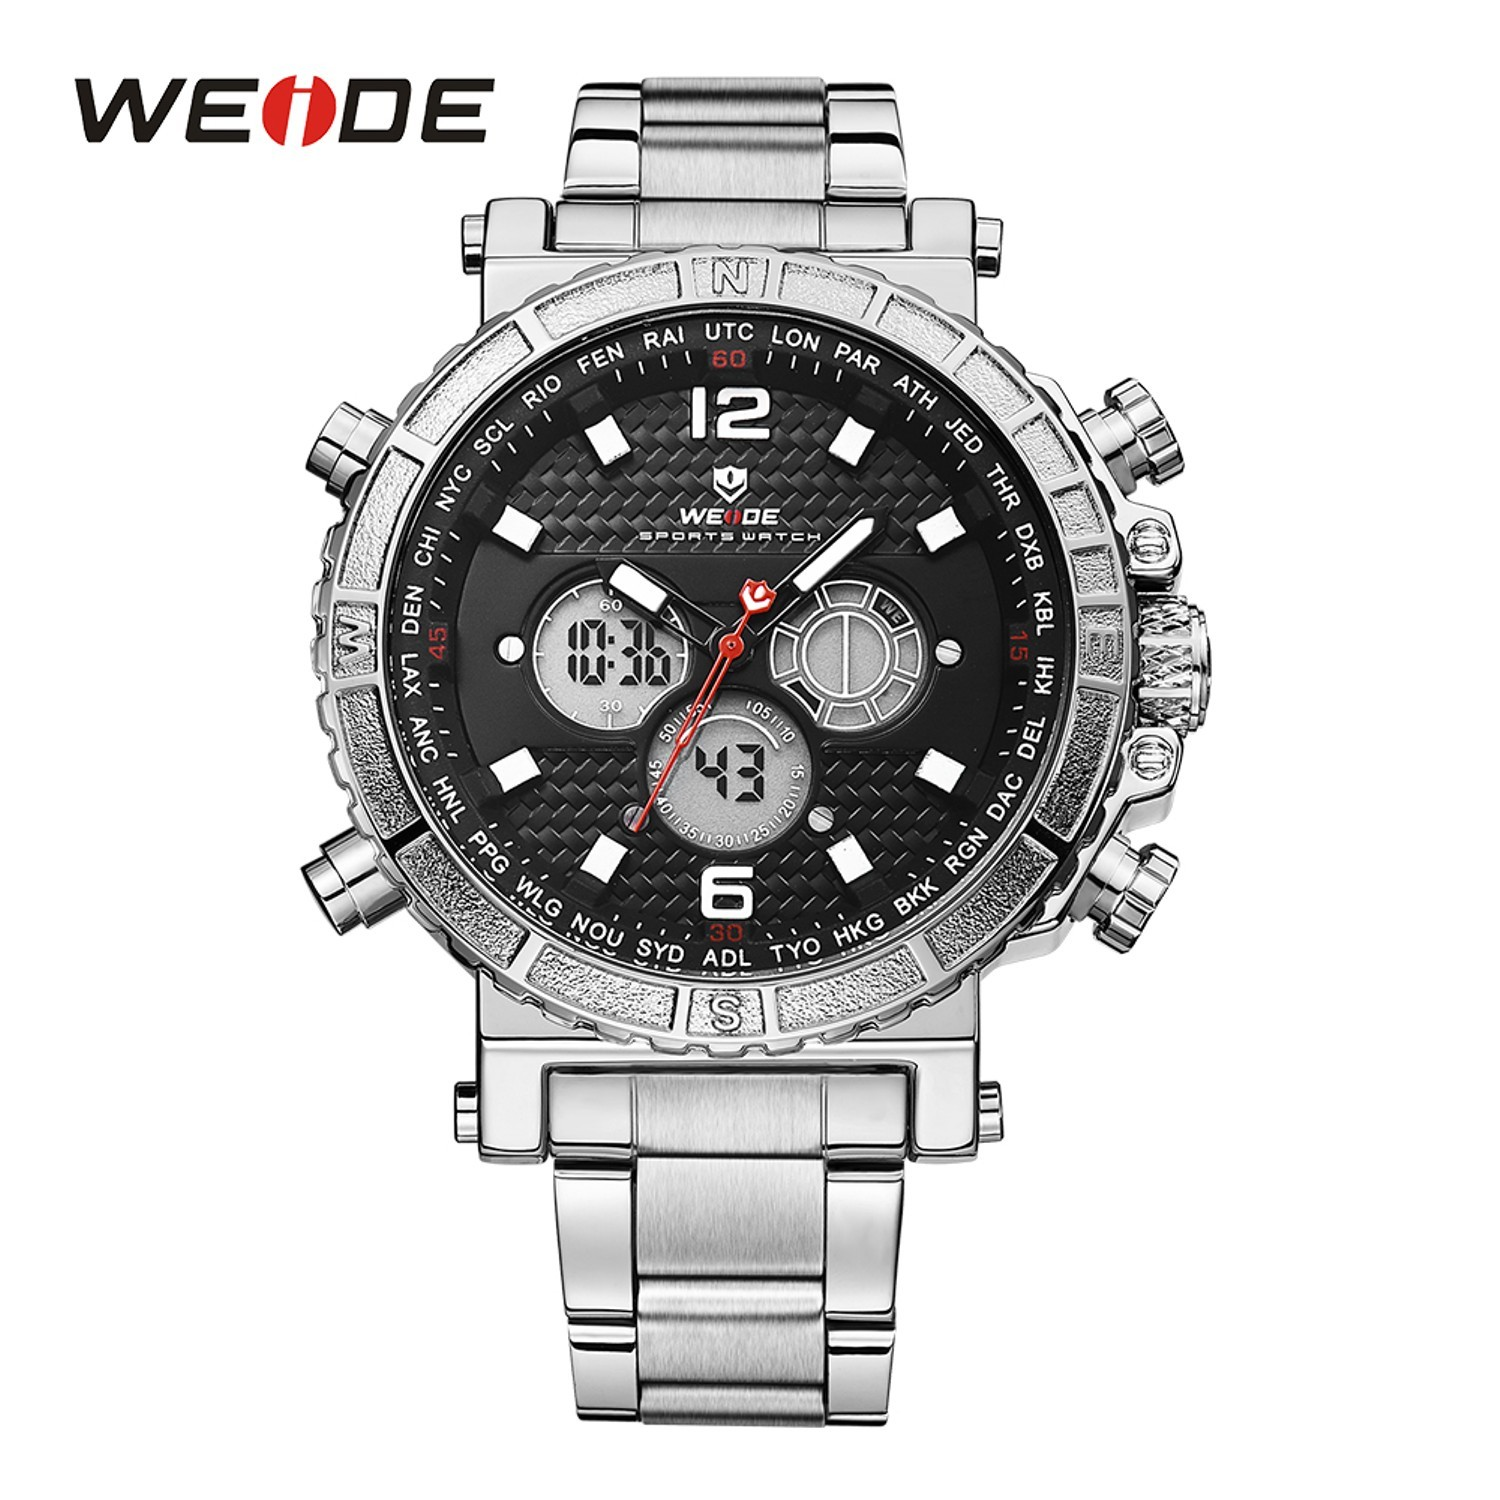 WEIDE-Mens-Sport-Stopwatch-Analog-Quartz-Date-Alarm-Digital-Display-Watch-Back-Light-Stainless-Steel-Band_1500x1500_STRETCH_385.jpg